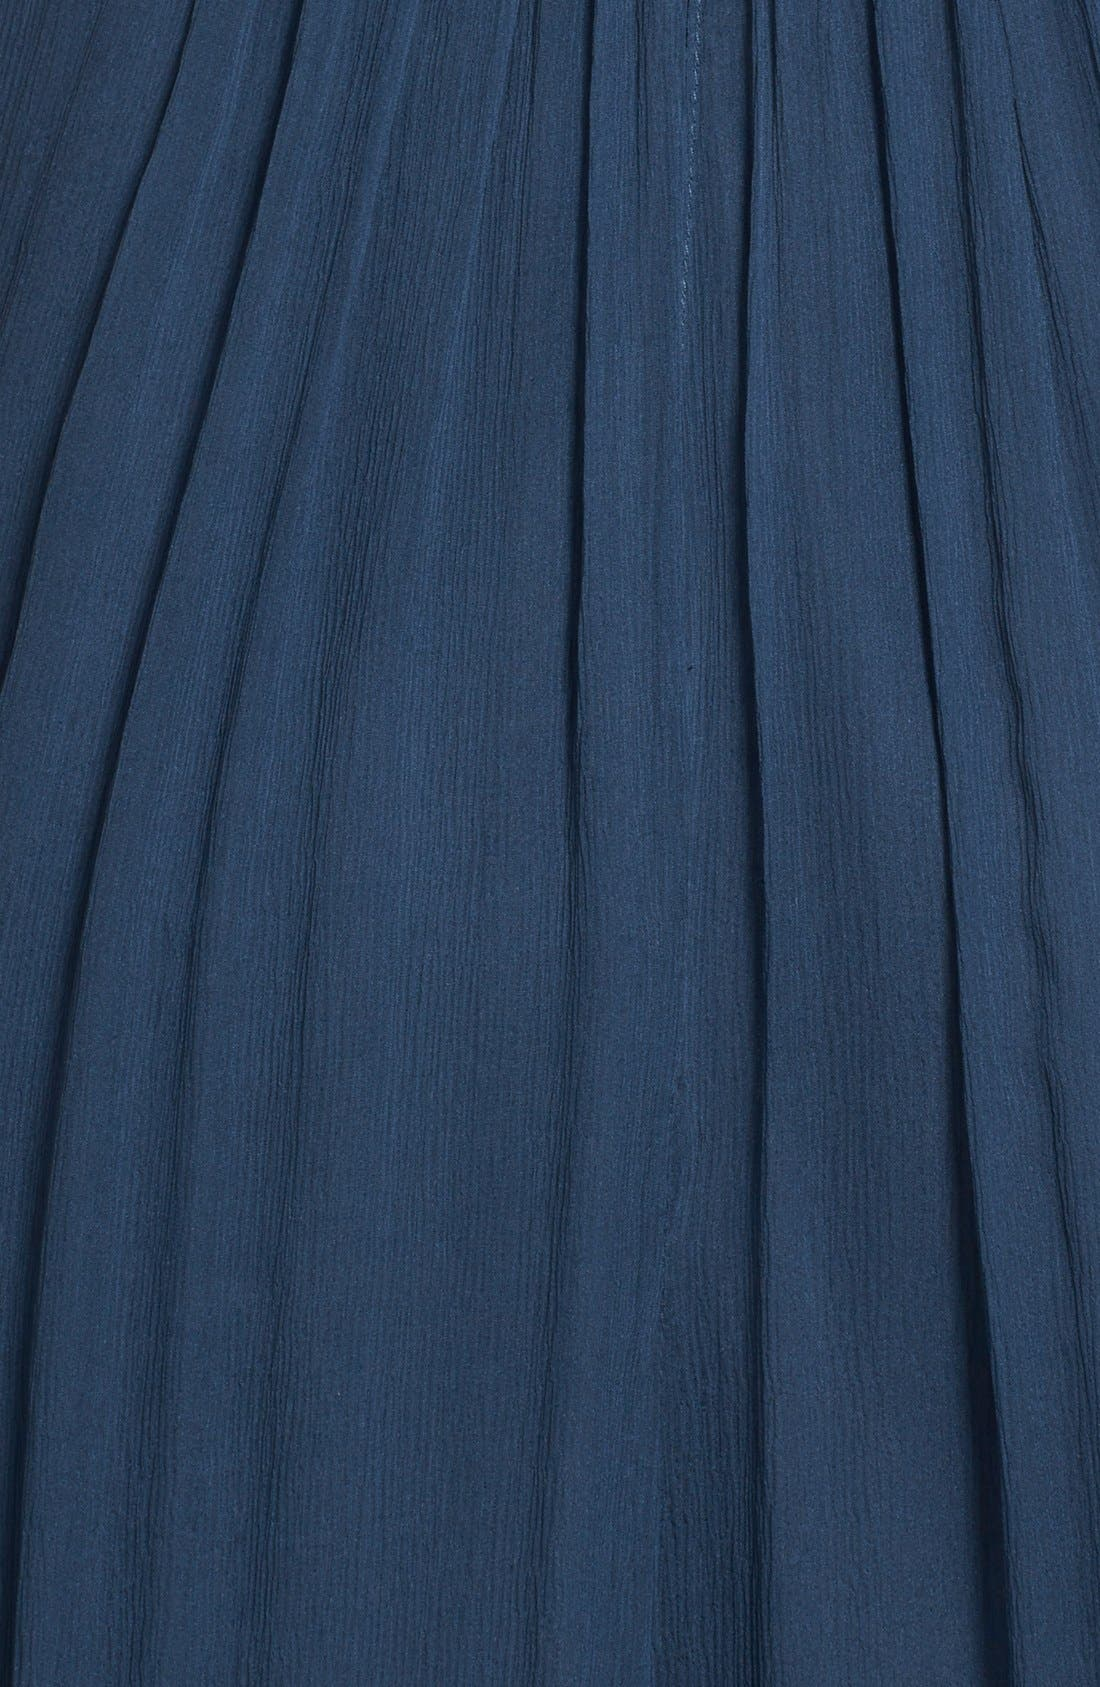 Convertible Crinkled Silk Chiffon Gown,                             Alternate thumbnail 22, color,